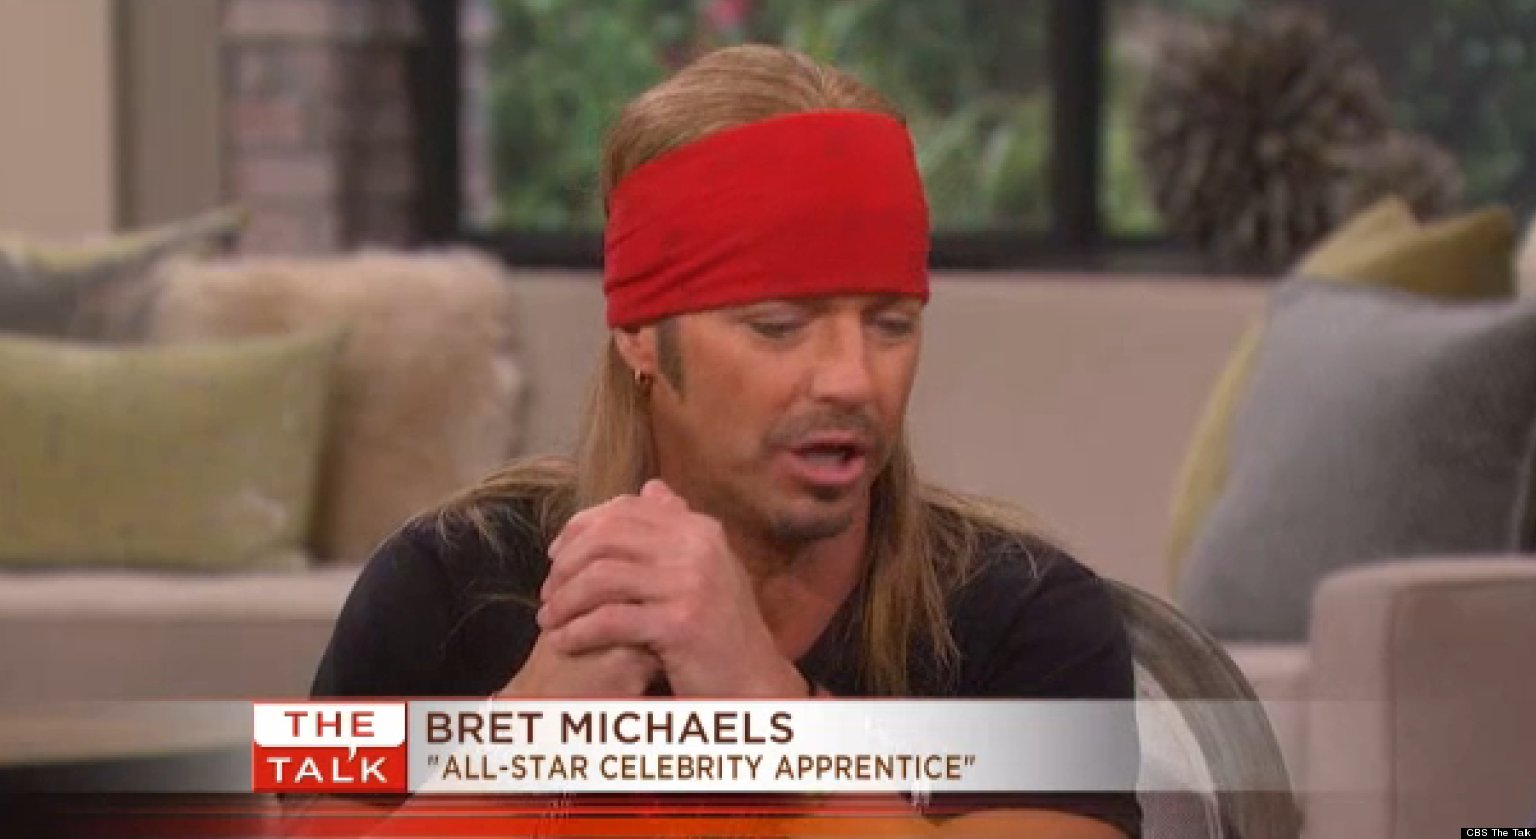 Celebrity apprentice with bret michaels